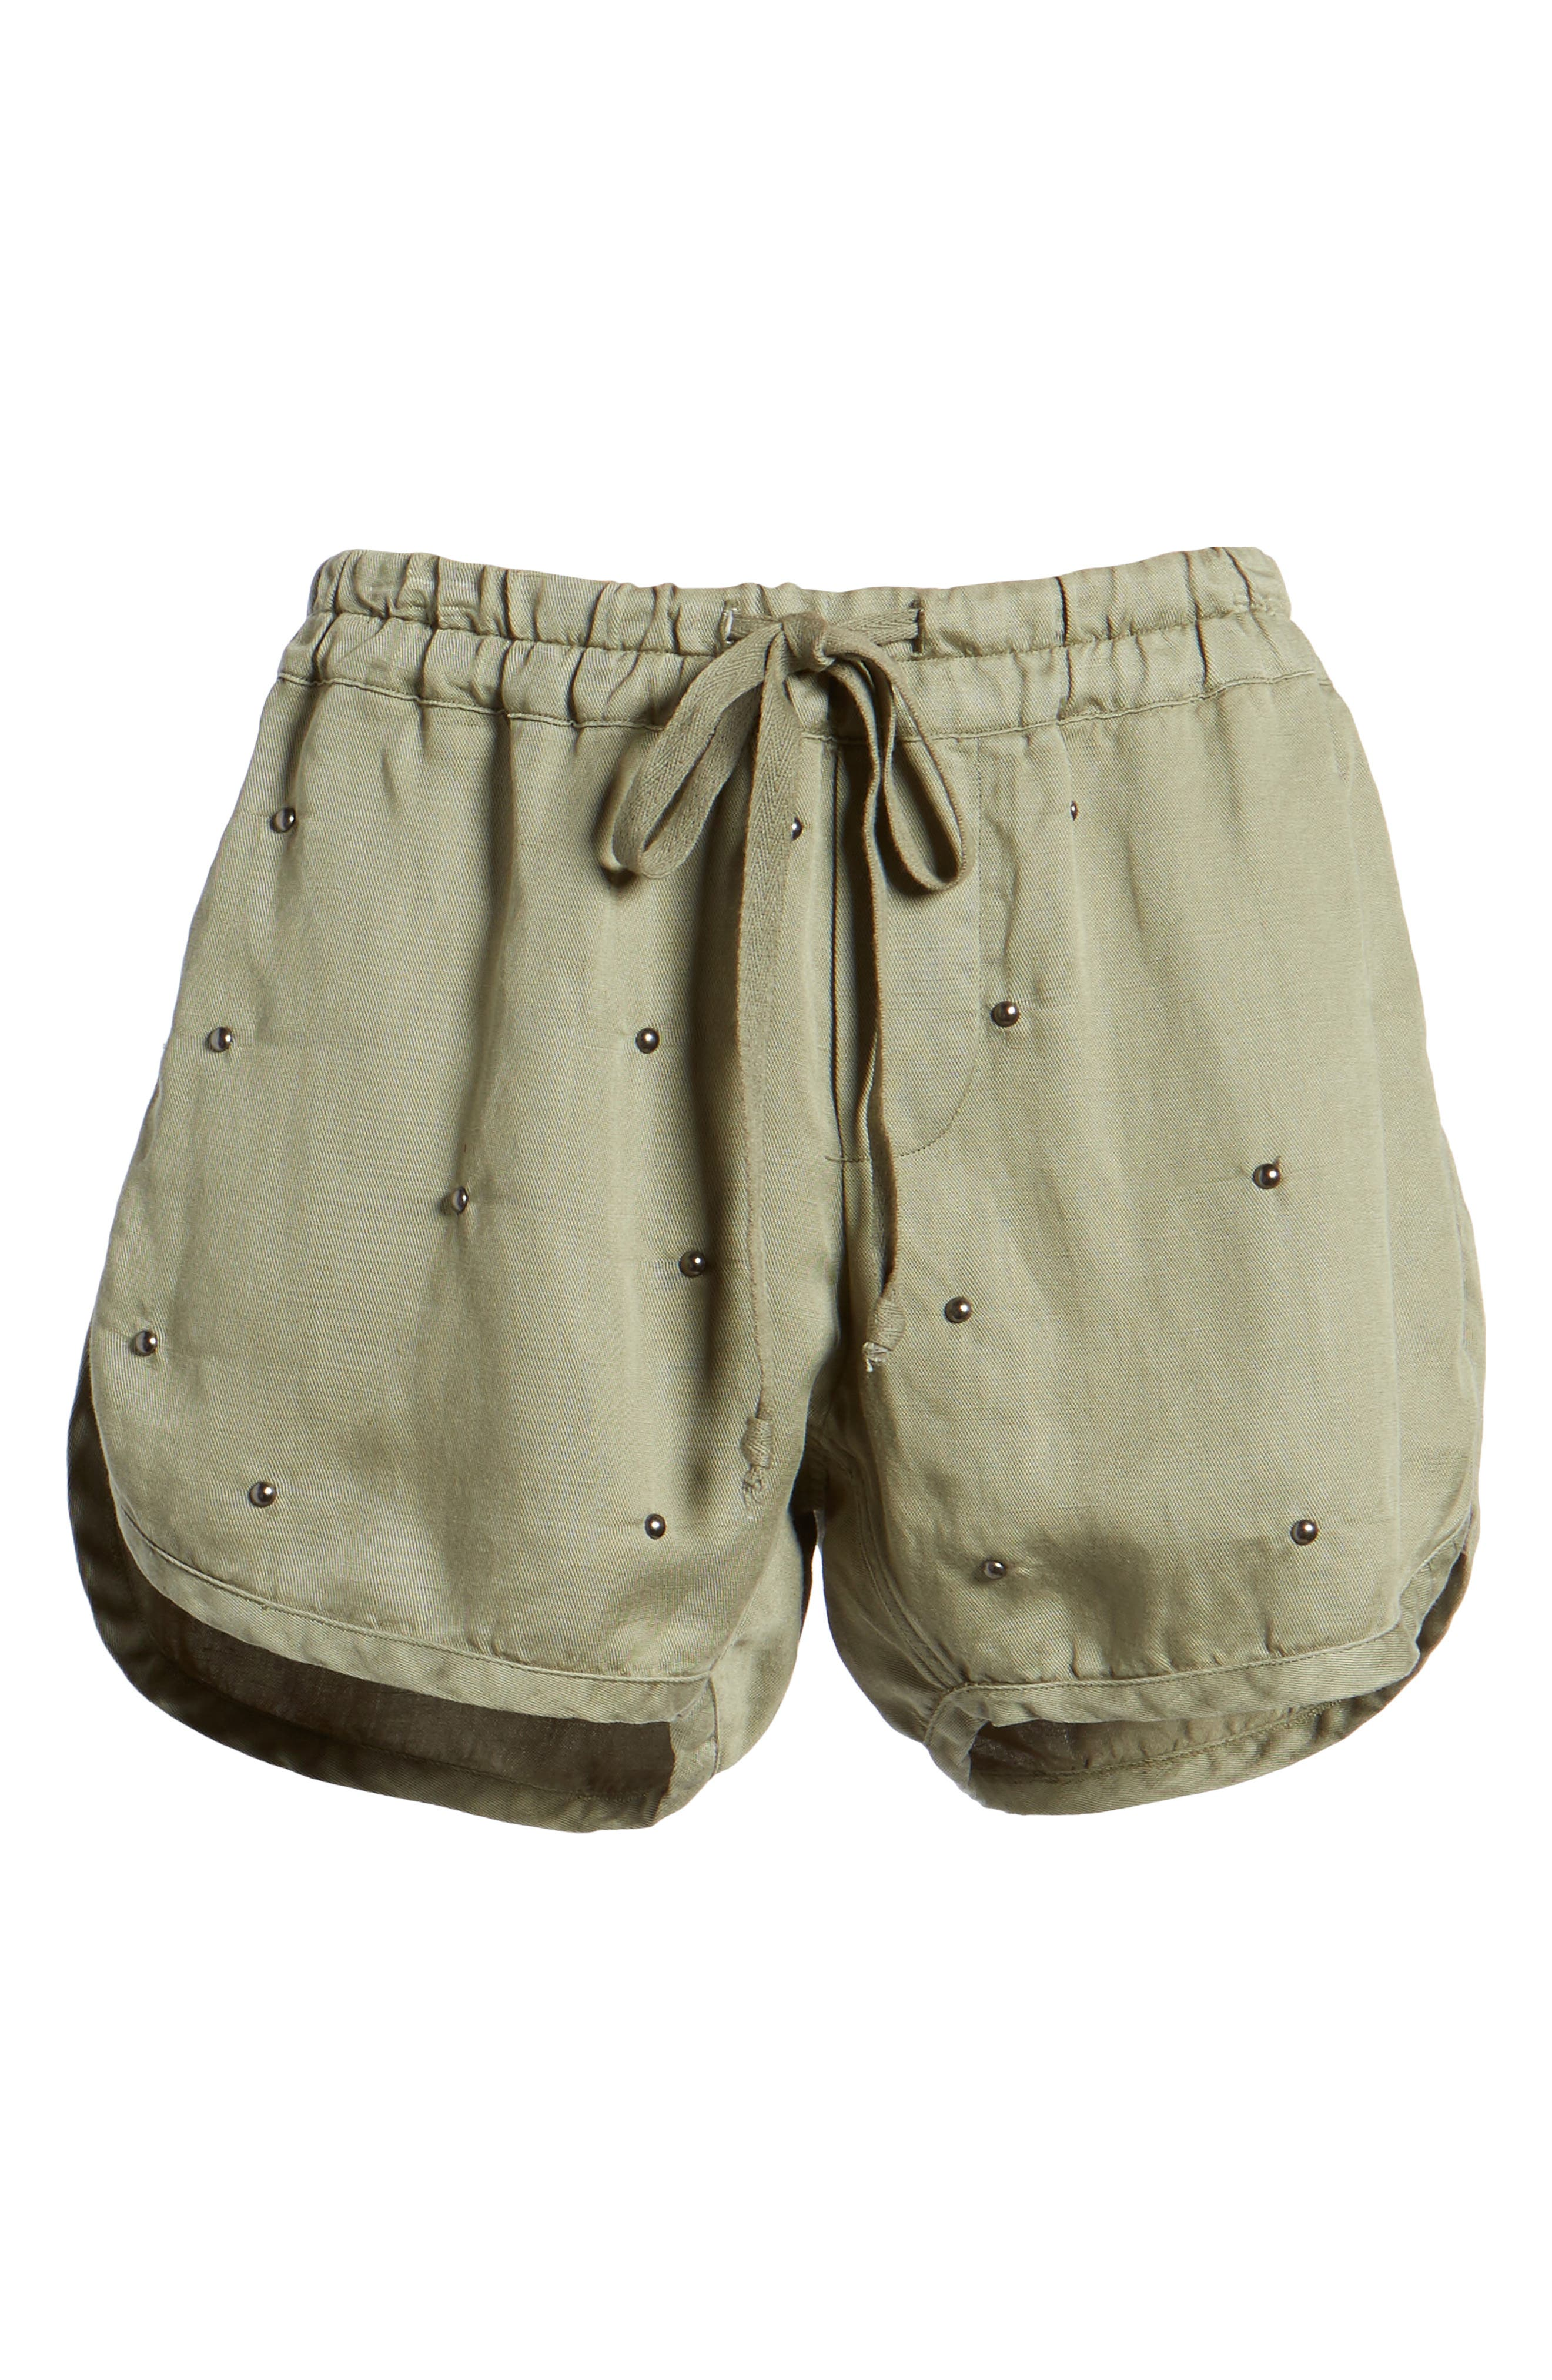 Thatcher Drawstring Shorts,                             Alternate thumbnail 6, color,                             Sage Studded